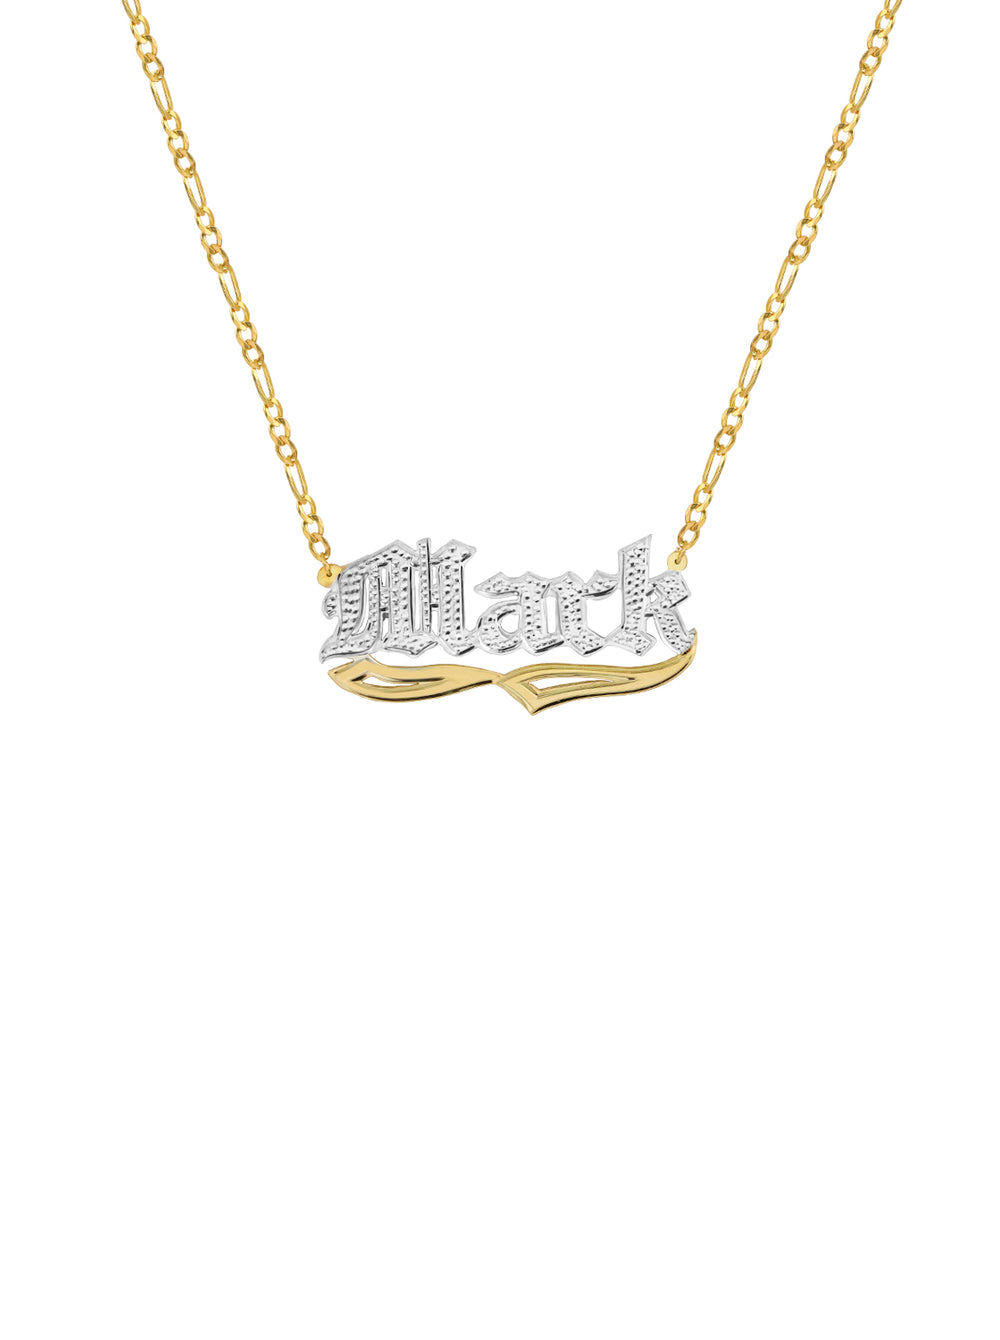 THE OLD ENGLISH FIGARO CUT CLASSIC NAMEPLATE NECKLACE  (CHAPTER II BY GREG YÜNA X THE M JEWELERS)